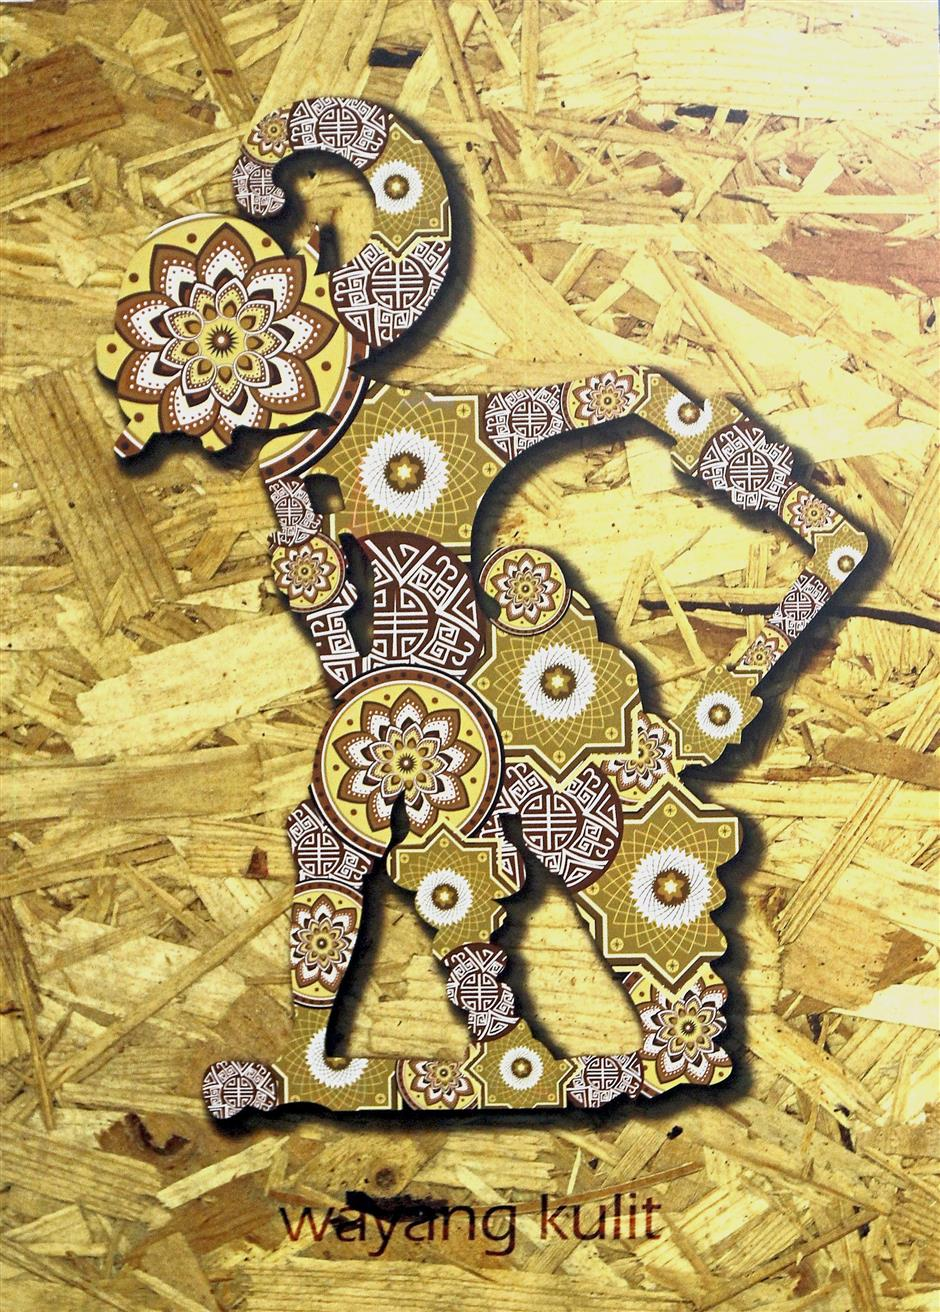 Chia used symbols that represent the Chinese, Malay and Indian communities for his artwork, the wayang kulit.